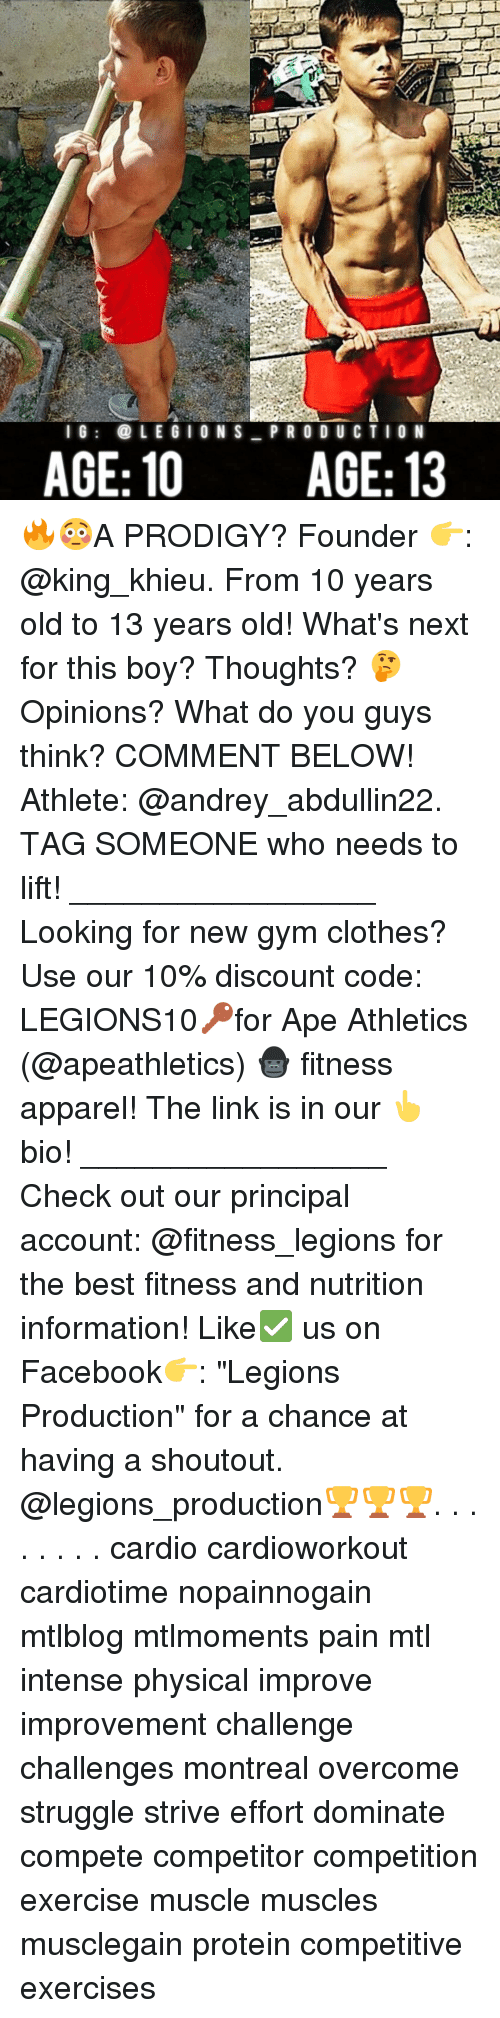 "physic: l G  LEGION S  PRO DU CTION  AGE: 10 AGE: 13 🔥😳A PRODIGY? Founder 👉: @king_khieu. From 10 years old to 13 years old! What's next for this boy? Thoughts? 🤔Opinions? What do you guys think? COMMENT BELOW! Athlete: @andrey_abdullin22. TAG SOMEONE who needs to lift! _________________ Looking for new gym clothes? Use our 10% discount code: LEGIONS10🔑for Ape Athletics (@apeathletics) 🦍 fitness apparel! The link is in our 👆 bio! _________________ Check out our principal account: @fitness_legions for the best fitness and nutrition information! Like✅ us on Facebook👉: ""Legions Production"" for a chance at having a shoutout. @legions_production🏆🏆🏆. . . . . . . . cardio cardioworkout cardiotime nopainnogain mtlblog mtlmoments pain mtl intense physical improve improvement challenge challenges montreal overcome struggle strive effort dominate compete competitor competition exercise muscle muscles musclegain protein competitive exercises"